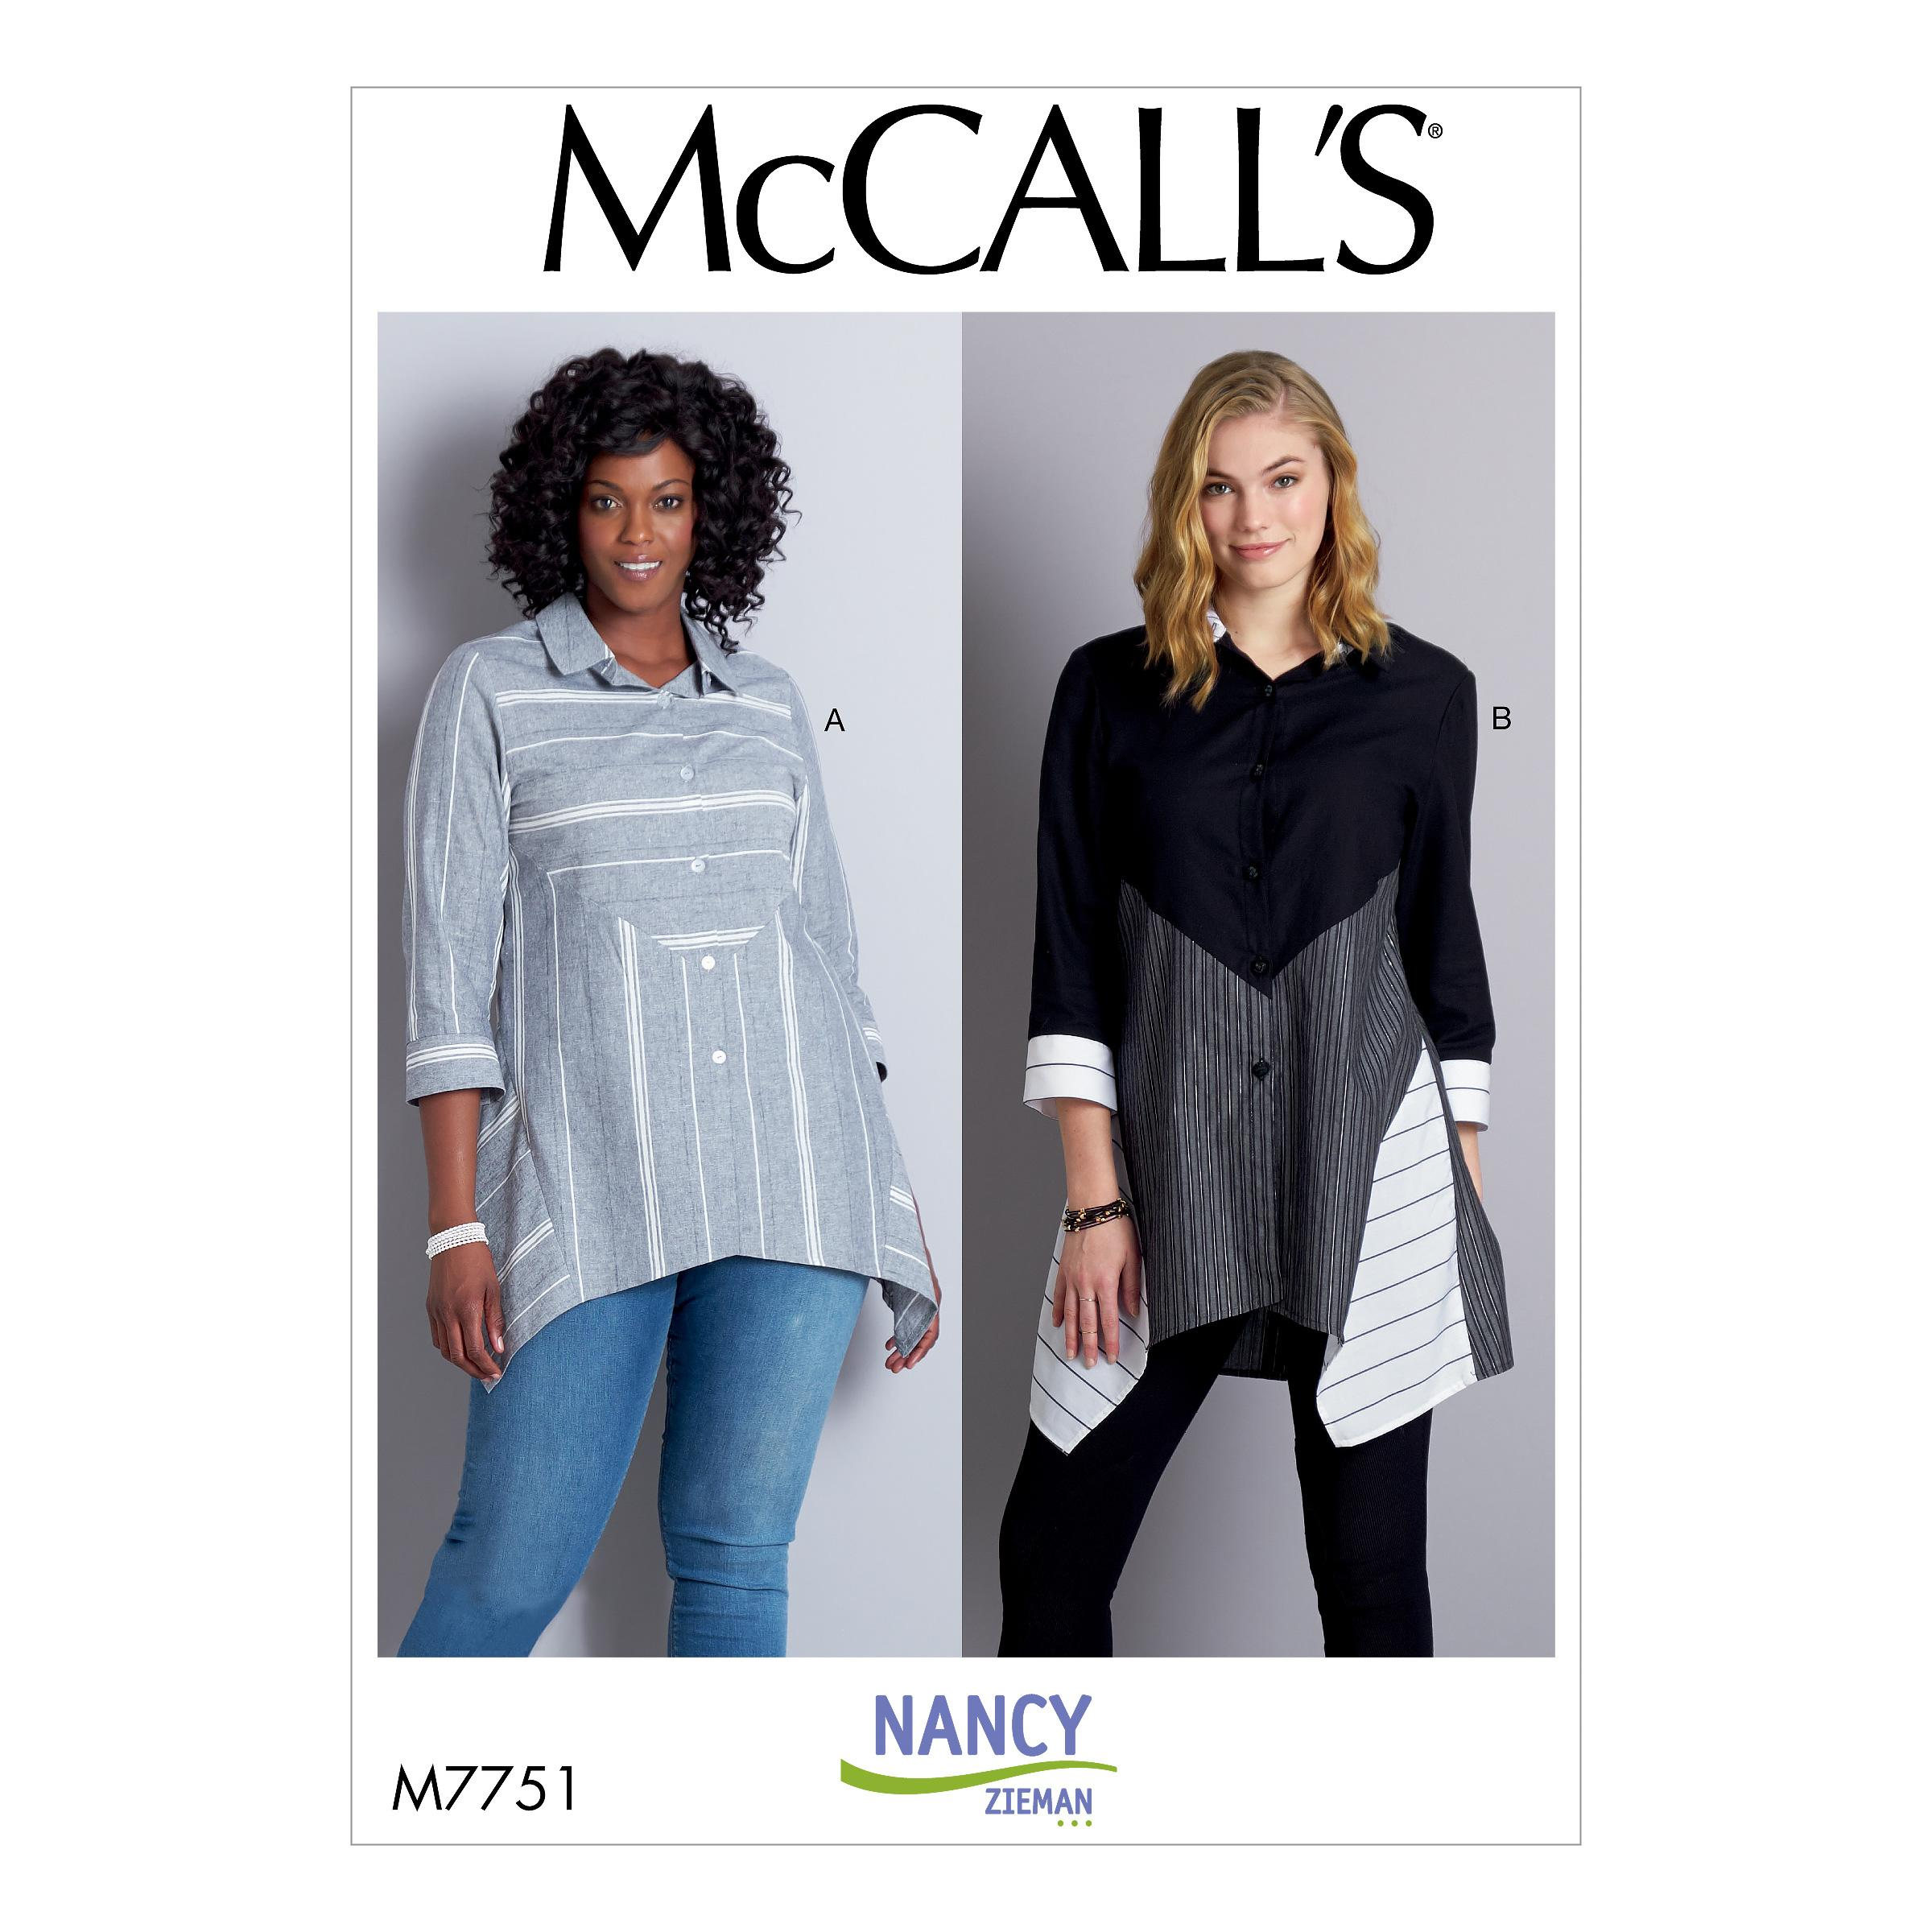 McCalls M7751 Misses Tops